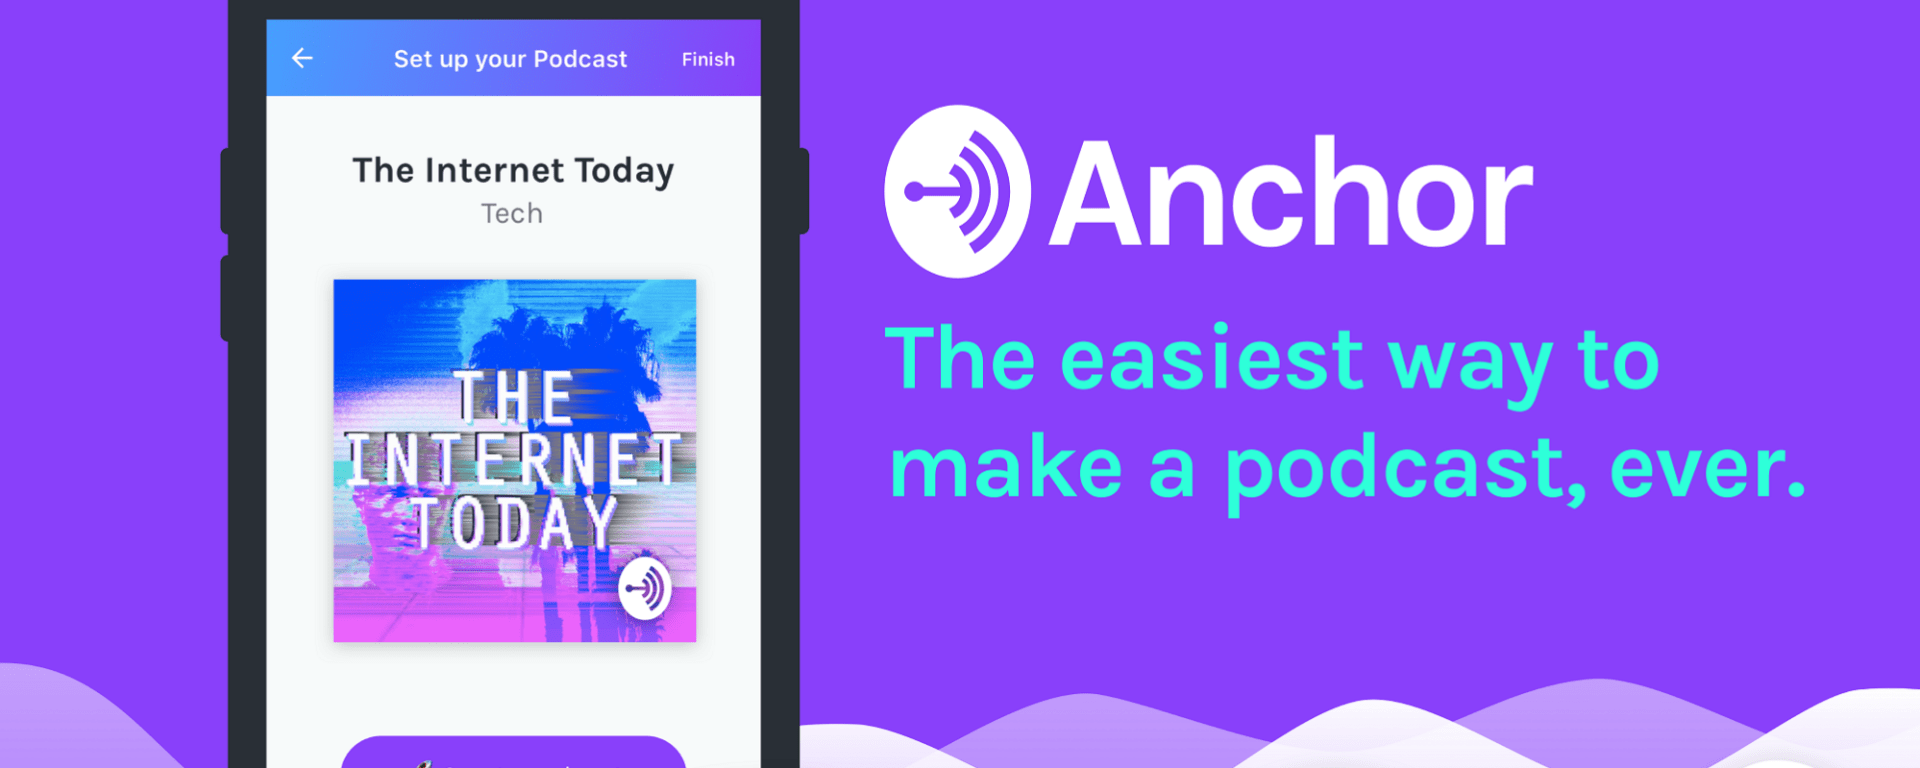 Como usar o Anchor para colocar seu podcast no ar